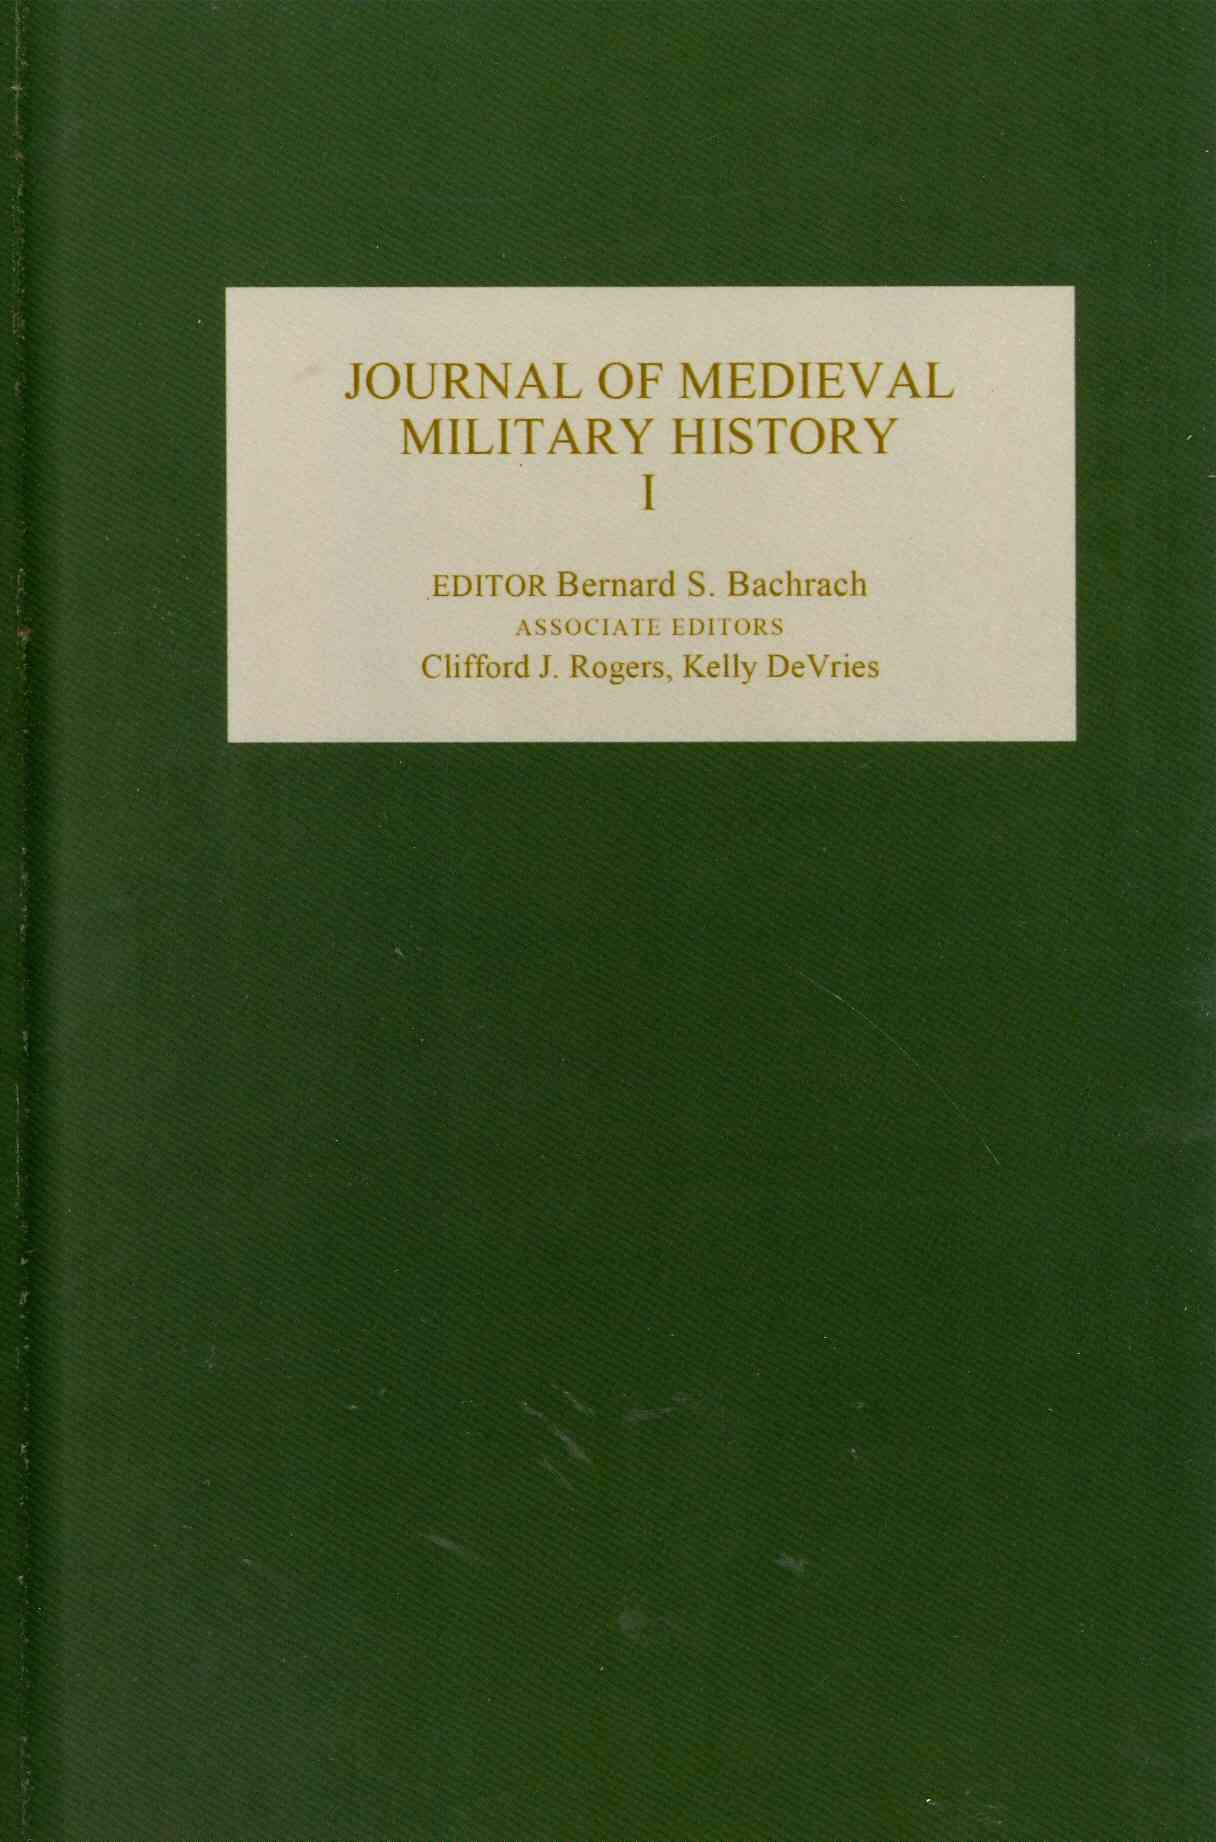 Journal of Medieval Military History (Hardcover)